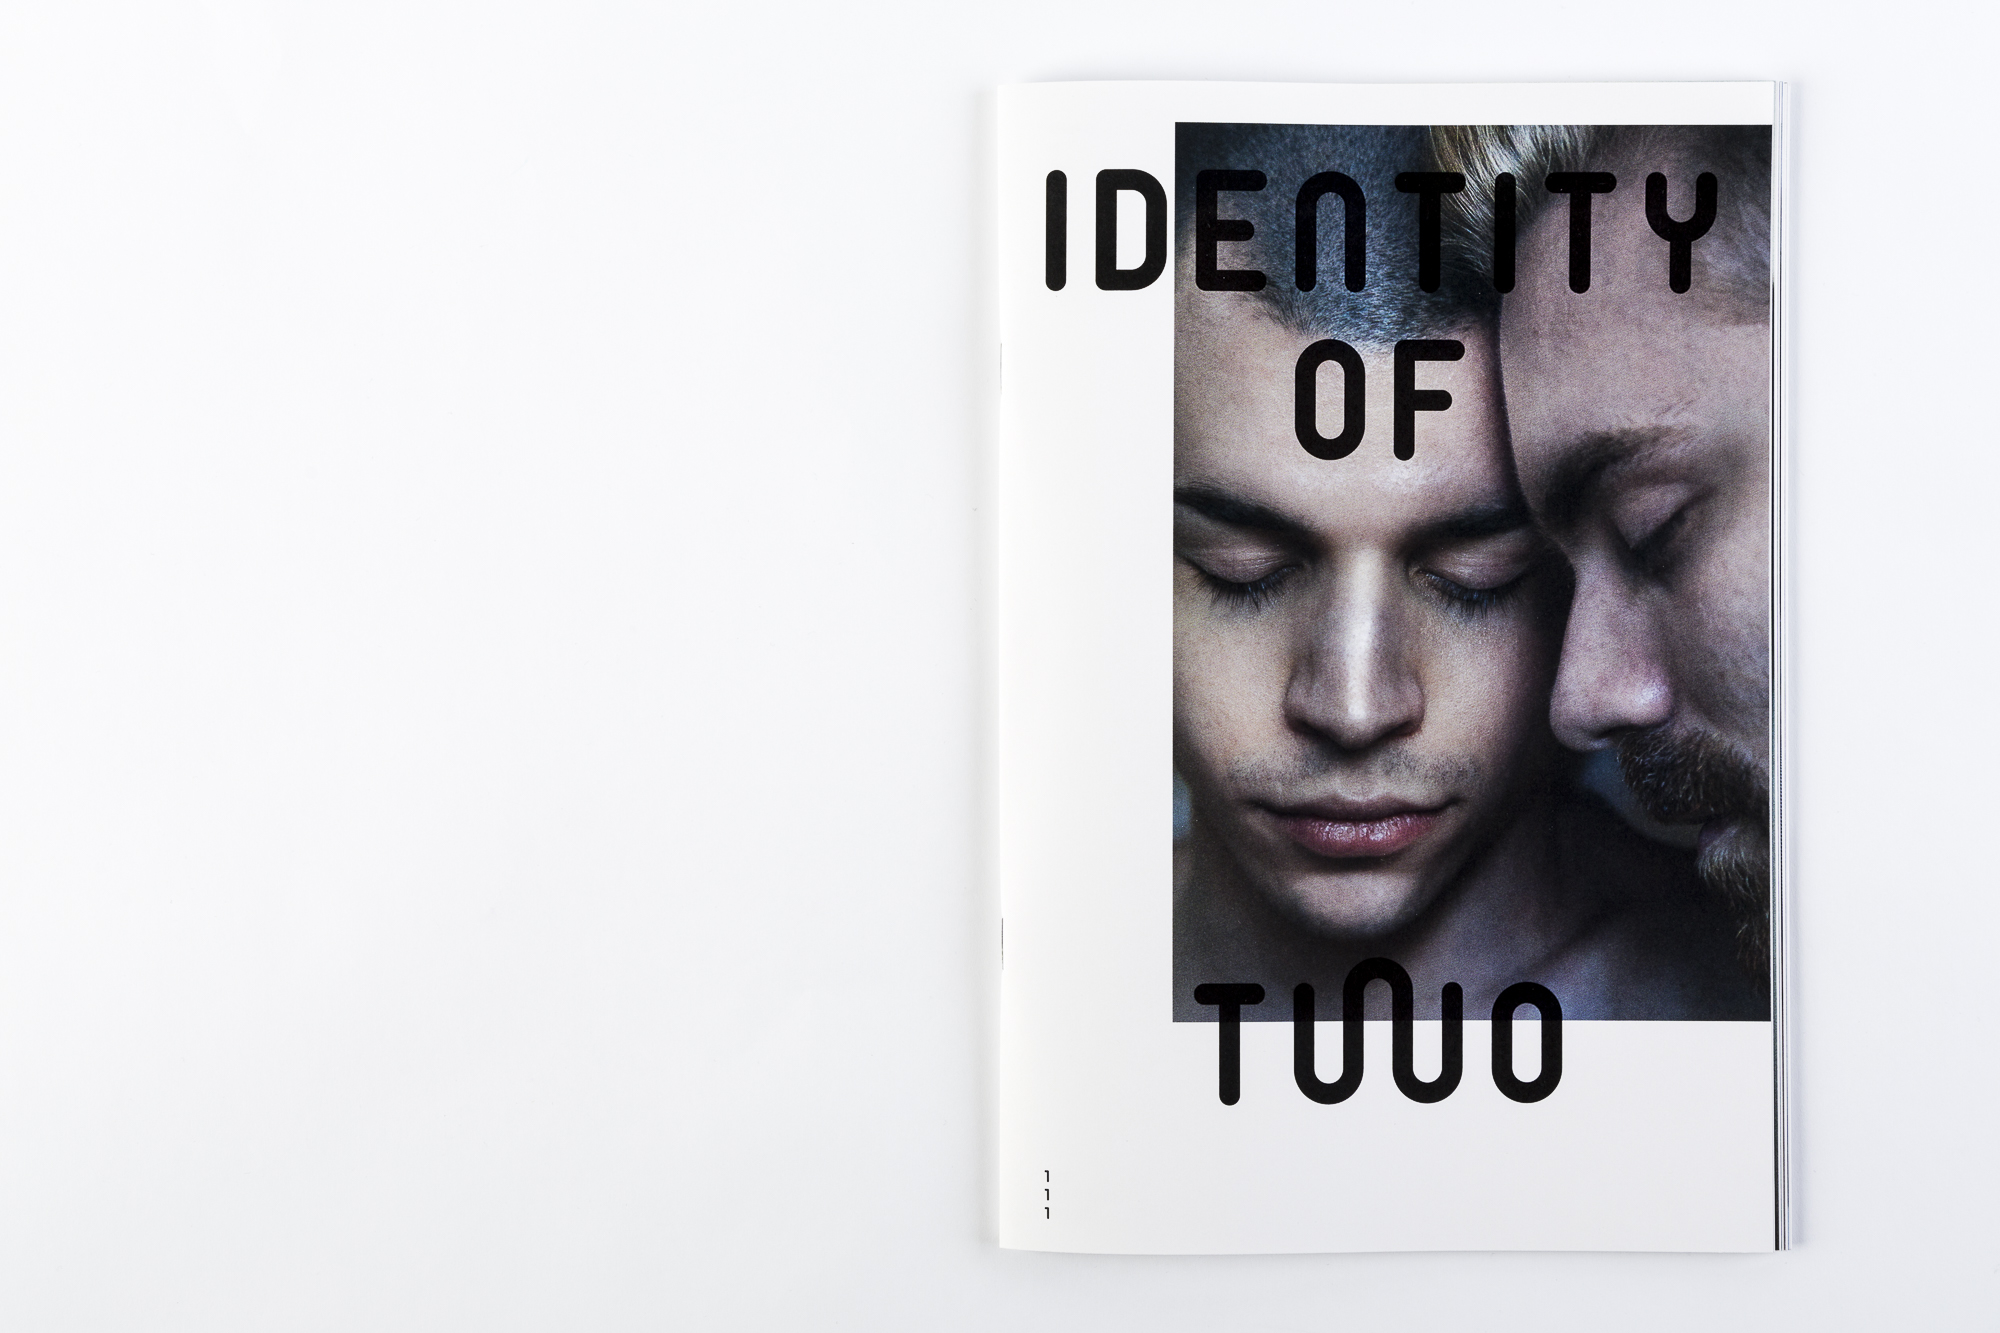 identity of two